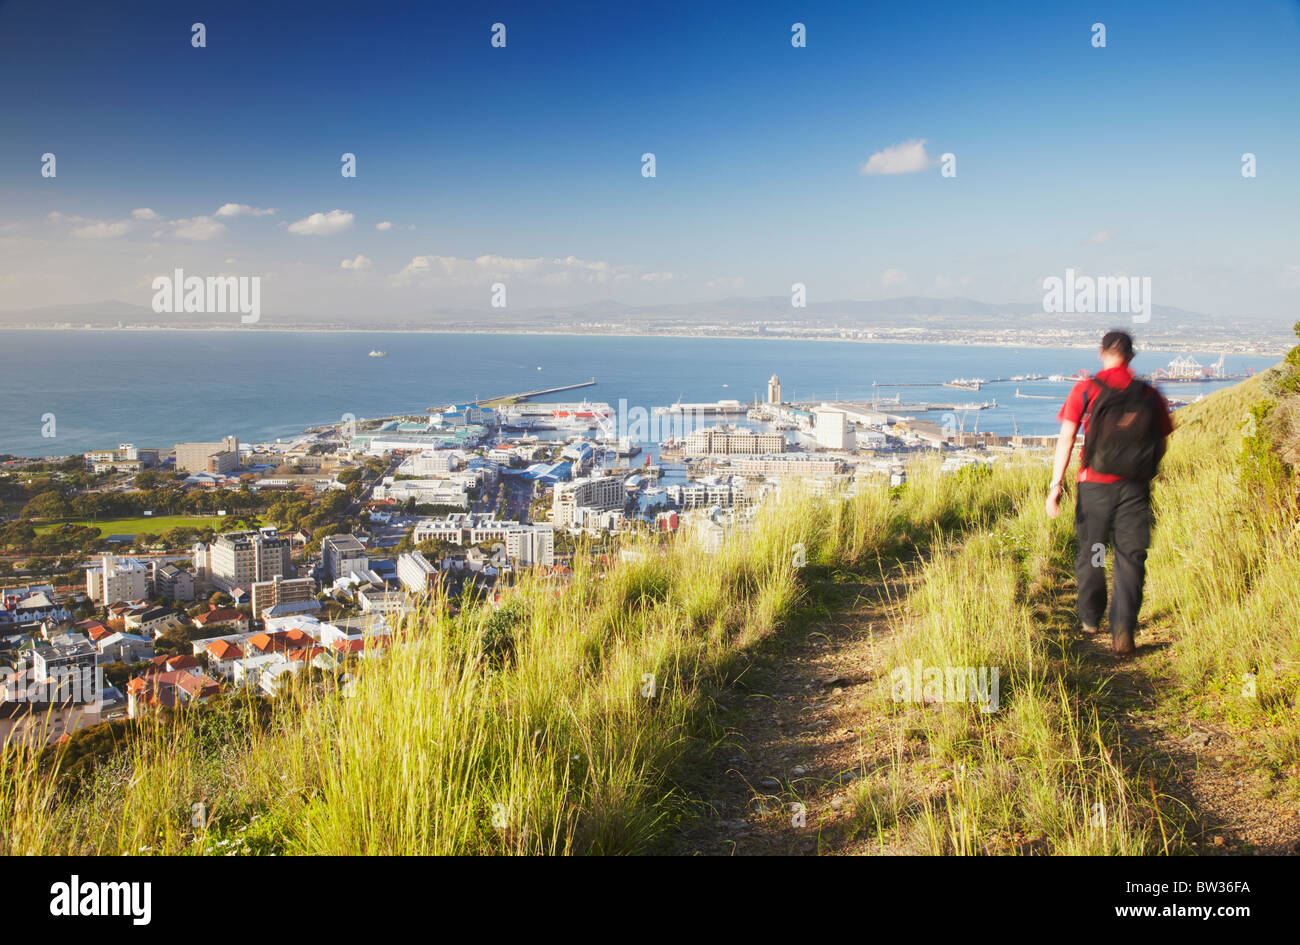 Man hiking on Signal Hill with Victoria and Alfred Waterfront in background, Cape Town, Western Cape, South Africa - Stock Image